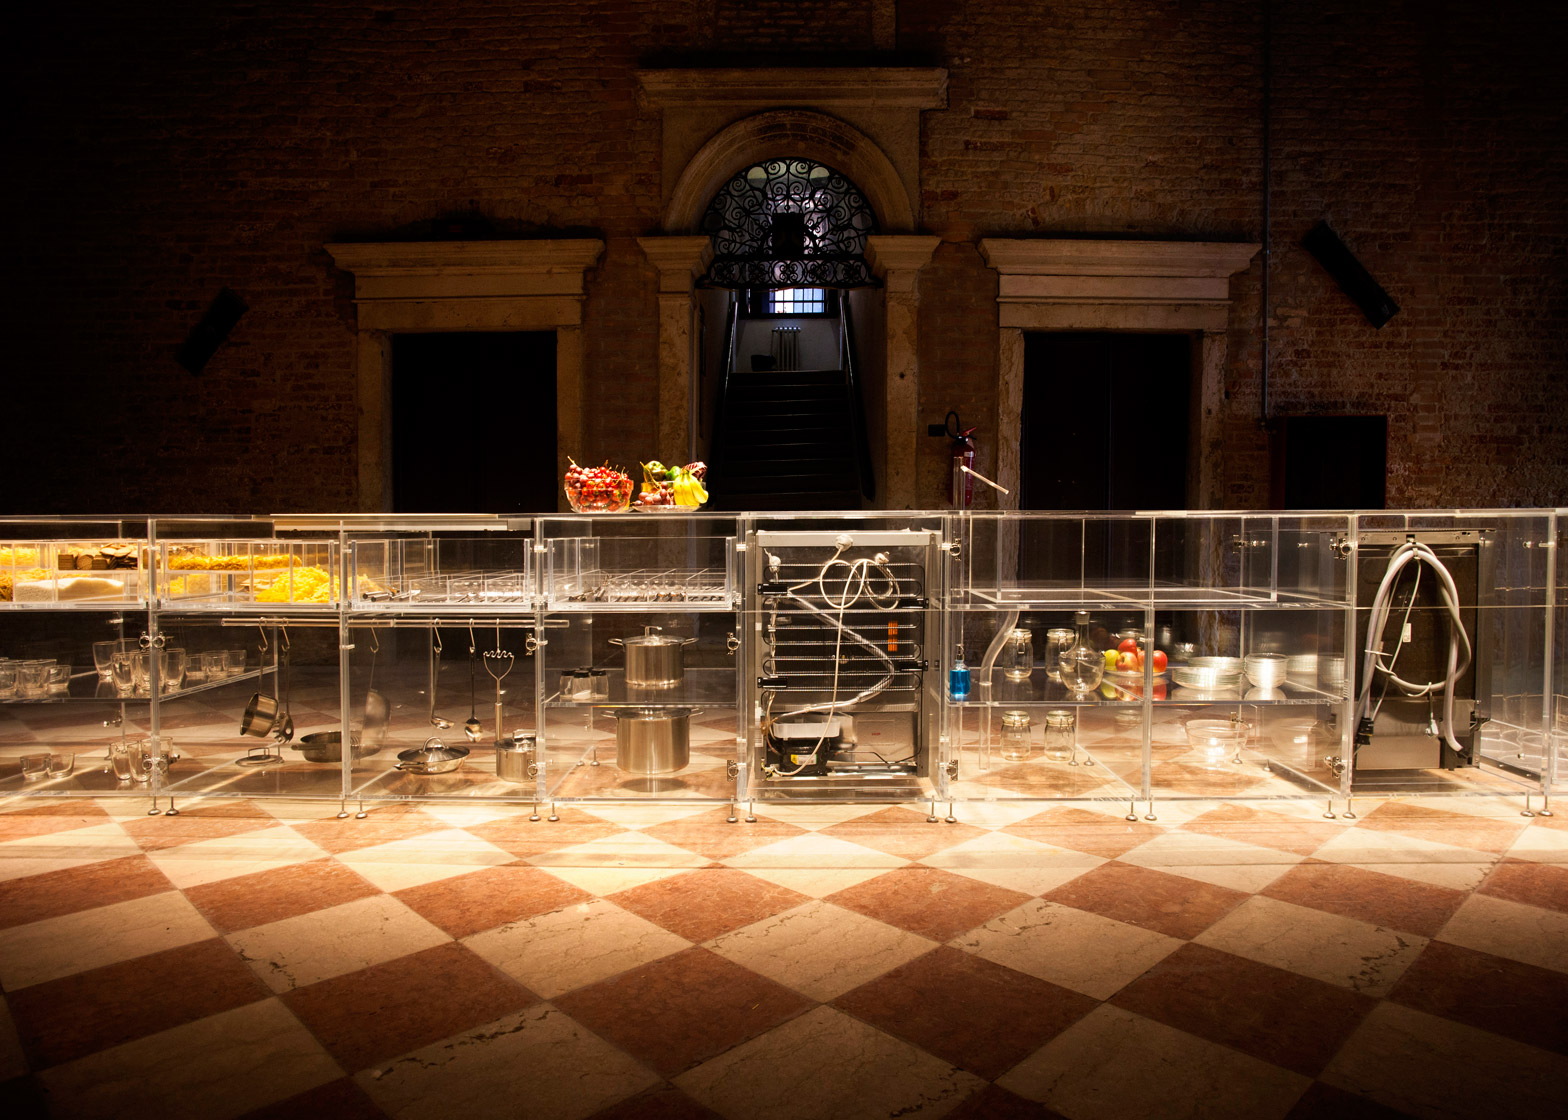 Infinity kitchen by MVRDV unveiled at the Venice Biennale 2016 is completely transparent